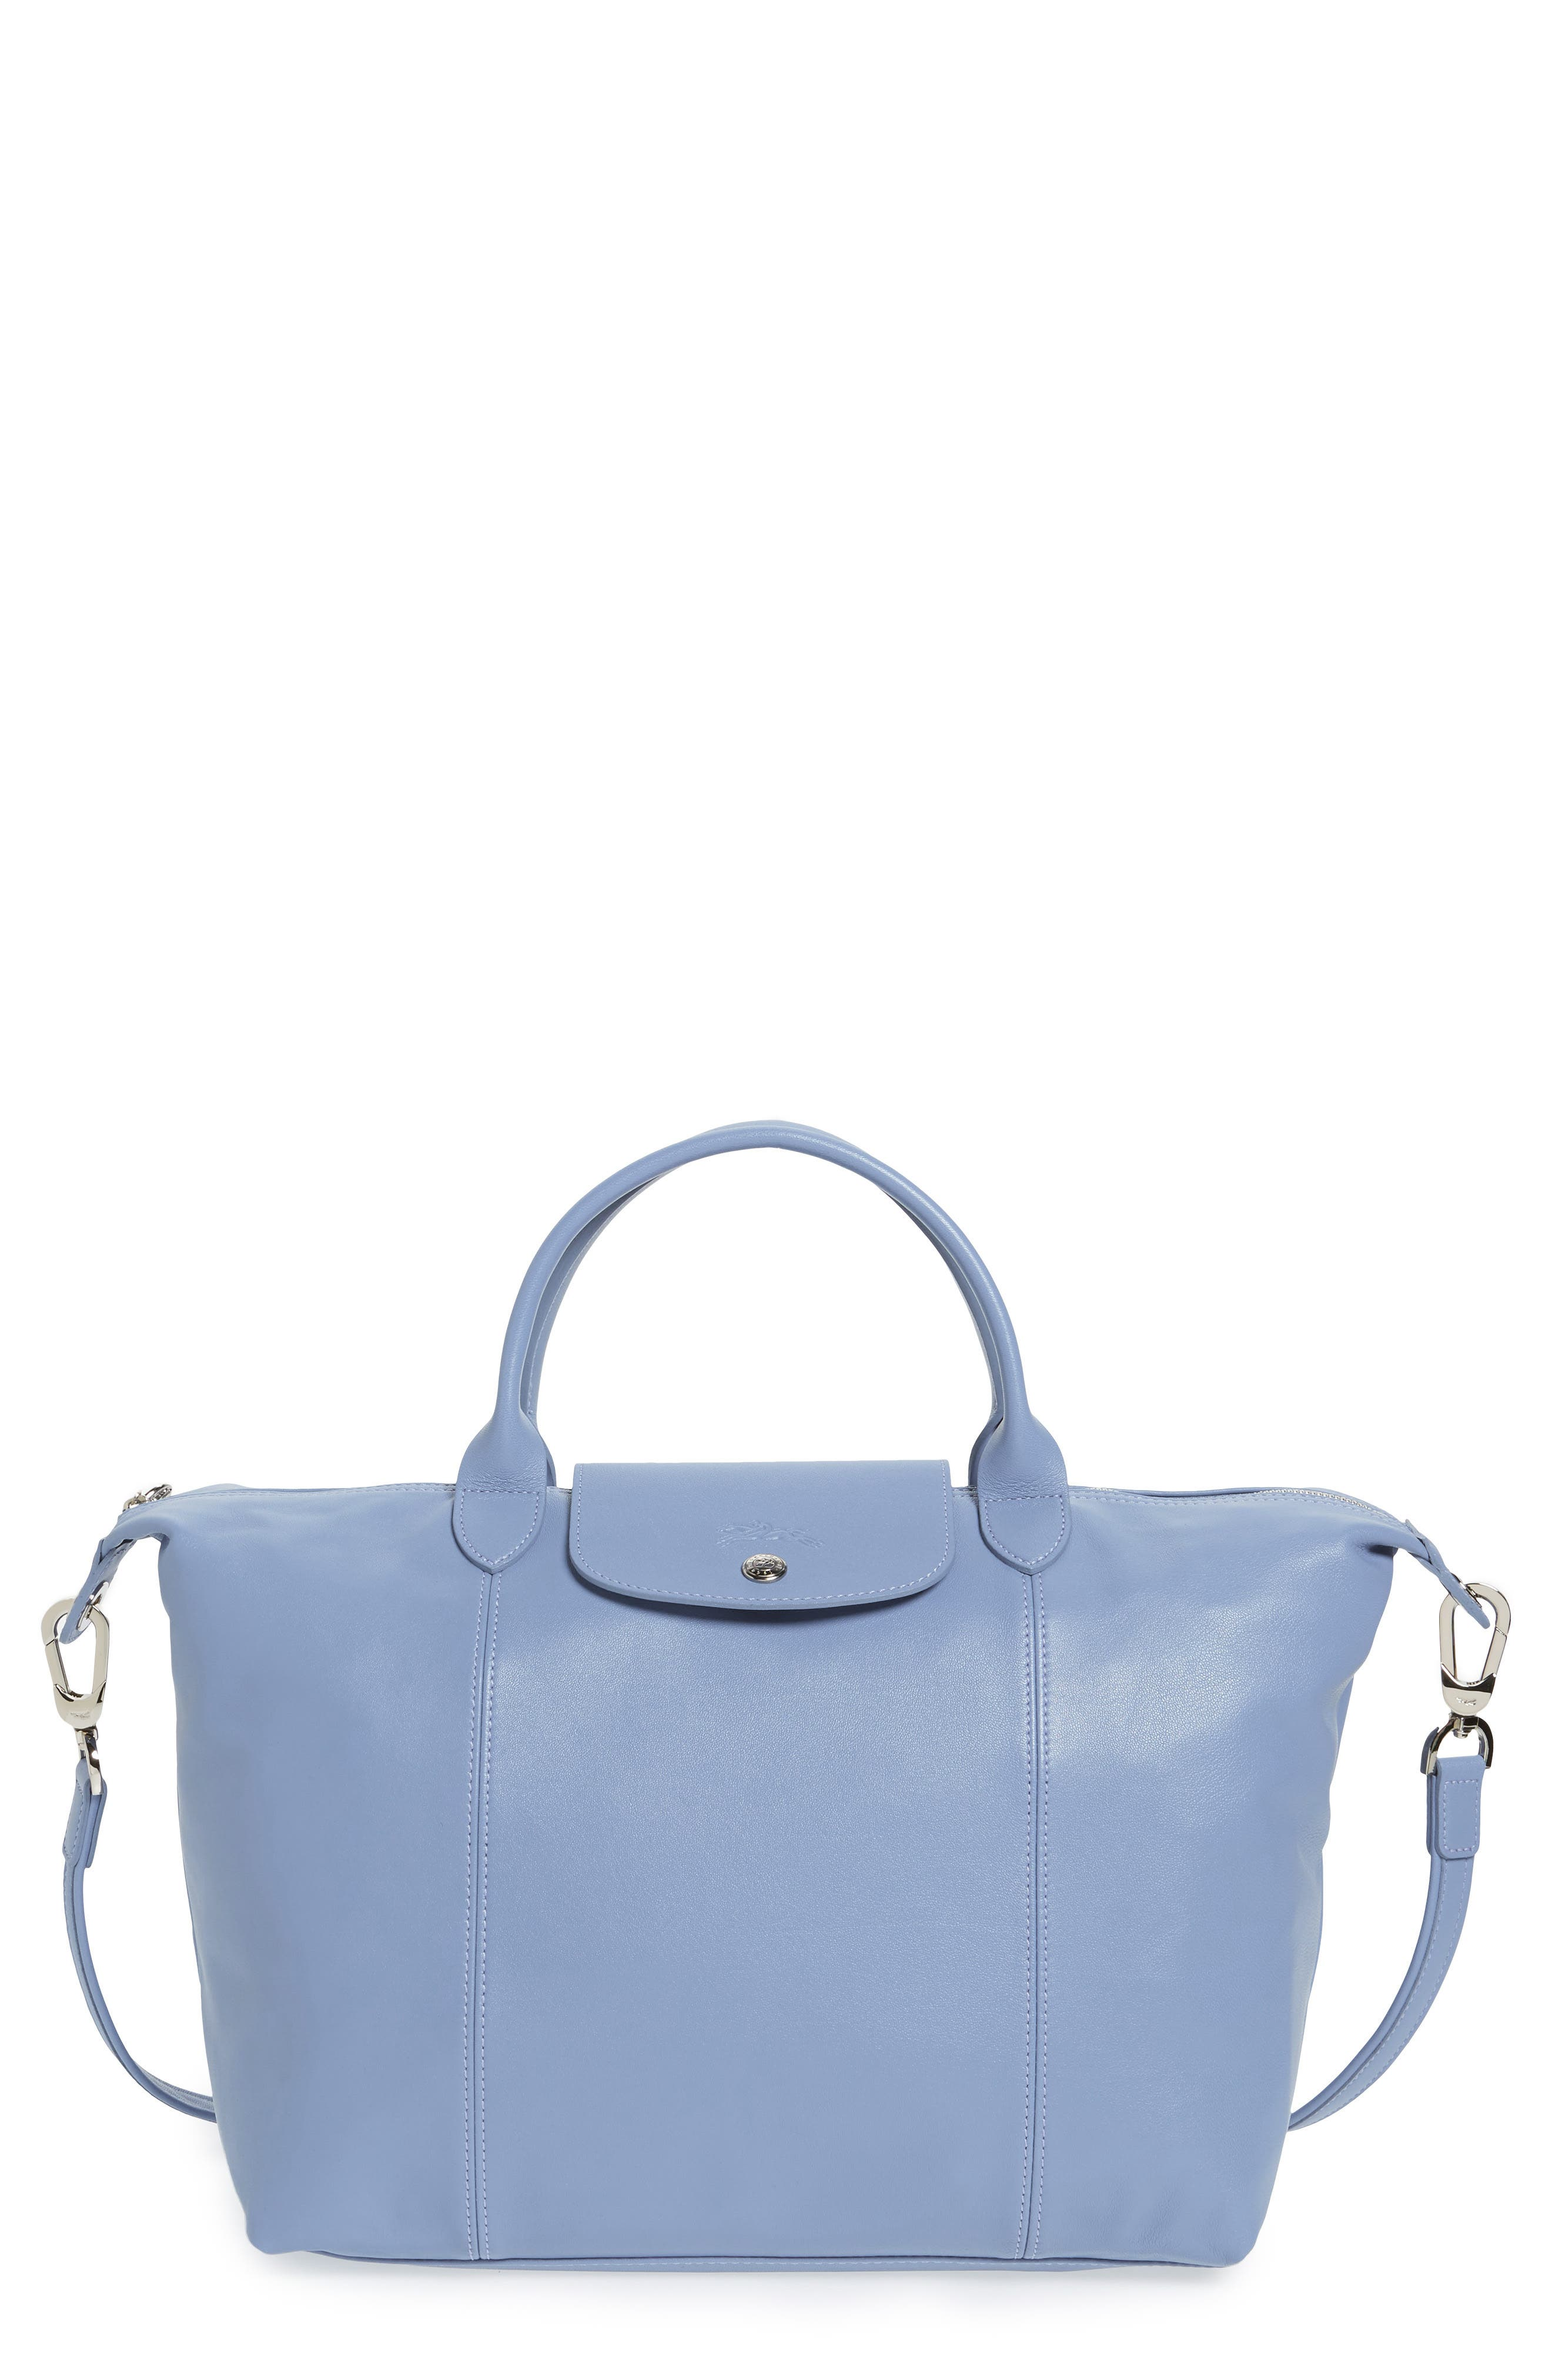 Medium 'Le Pliage Cuir' Leather Top Handle Tote,                             Main thumbnail 20, color,